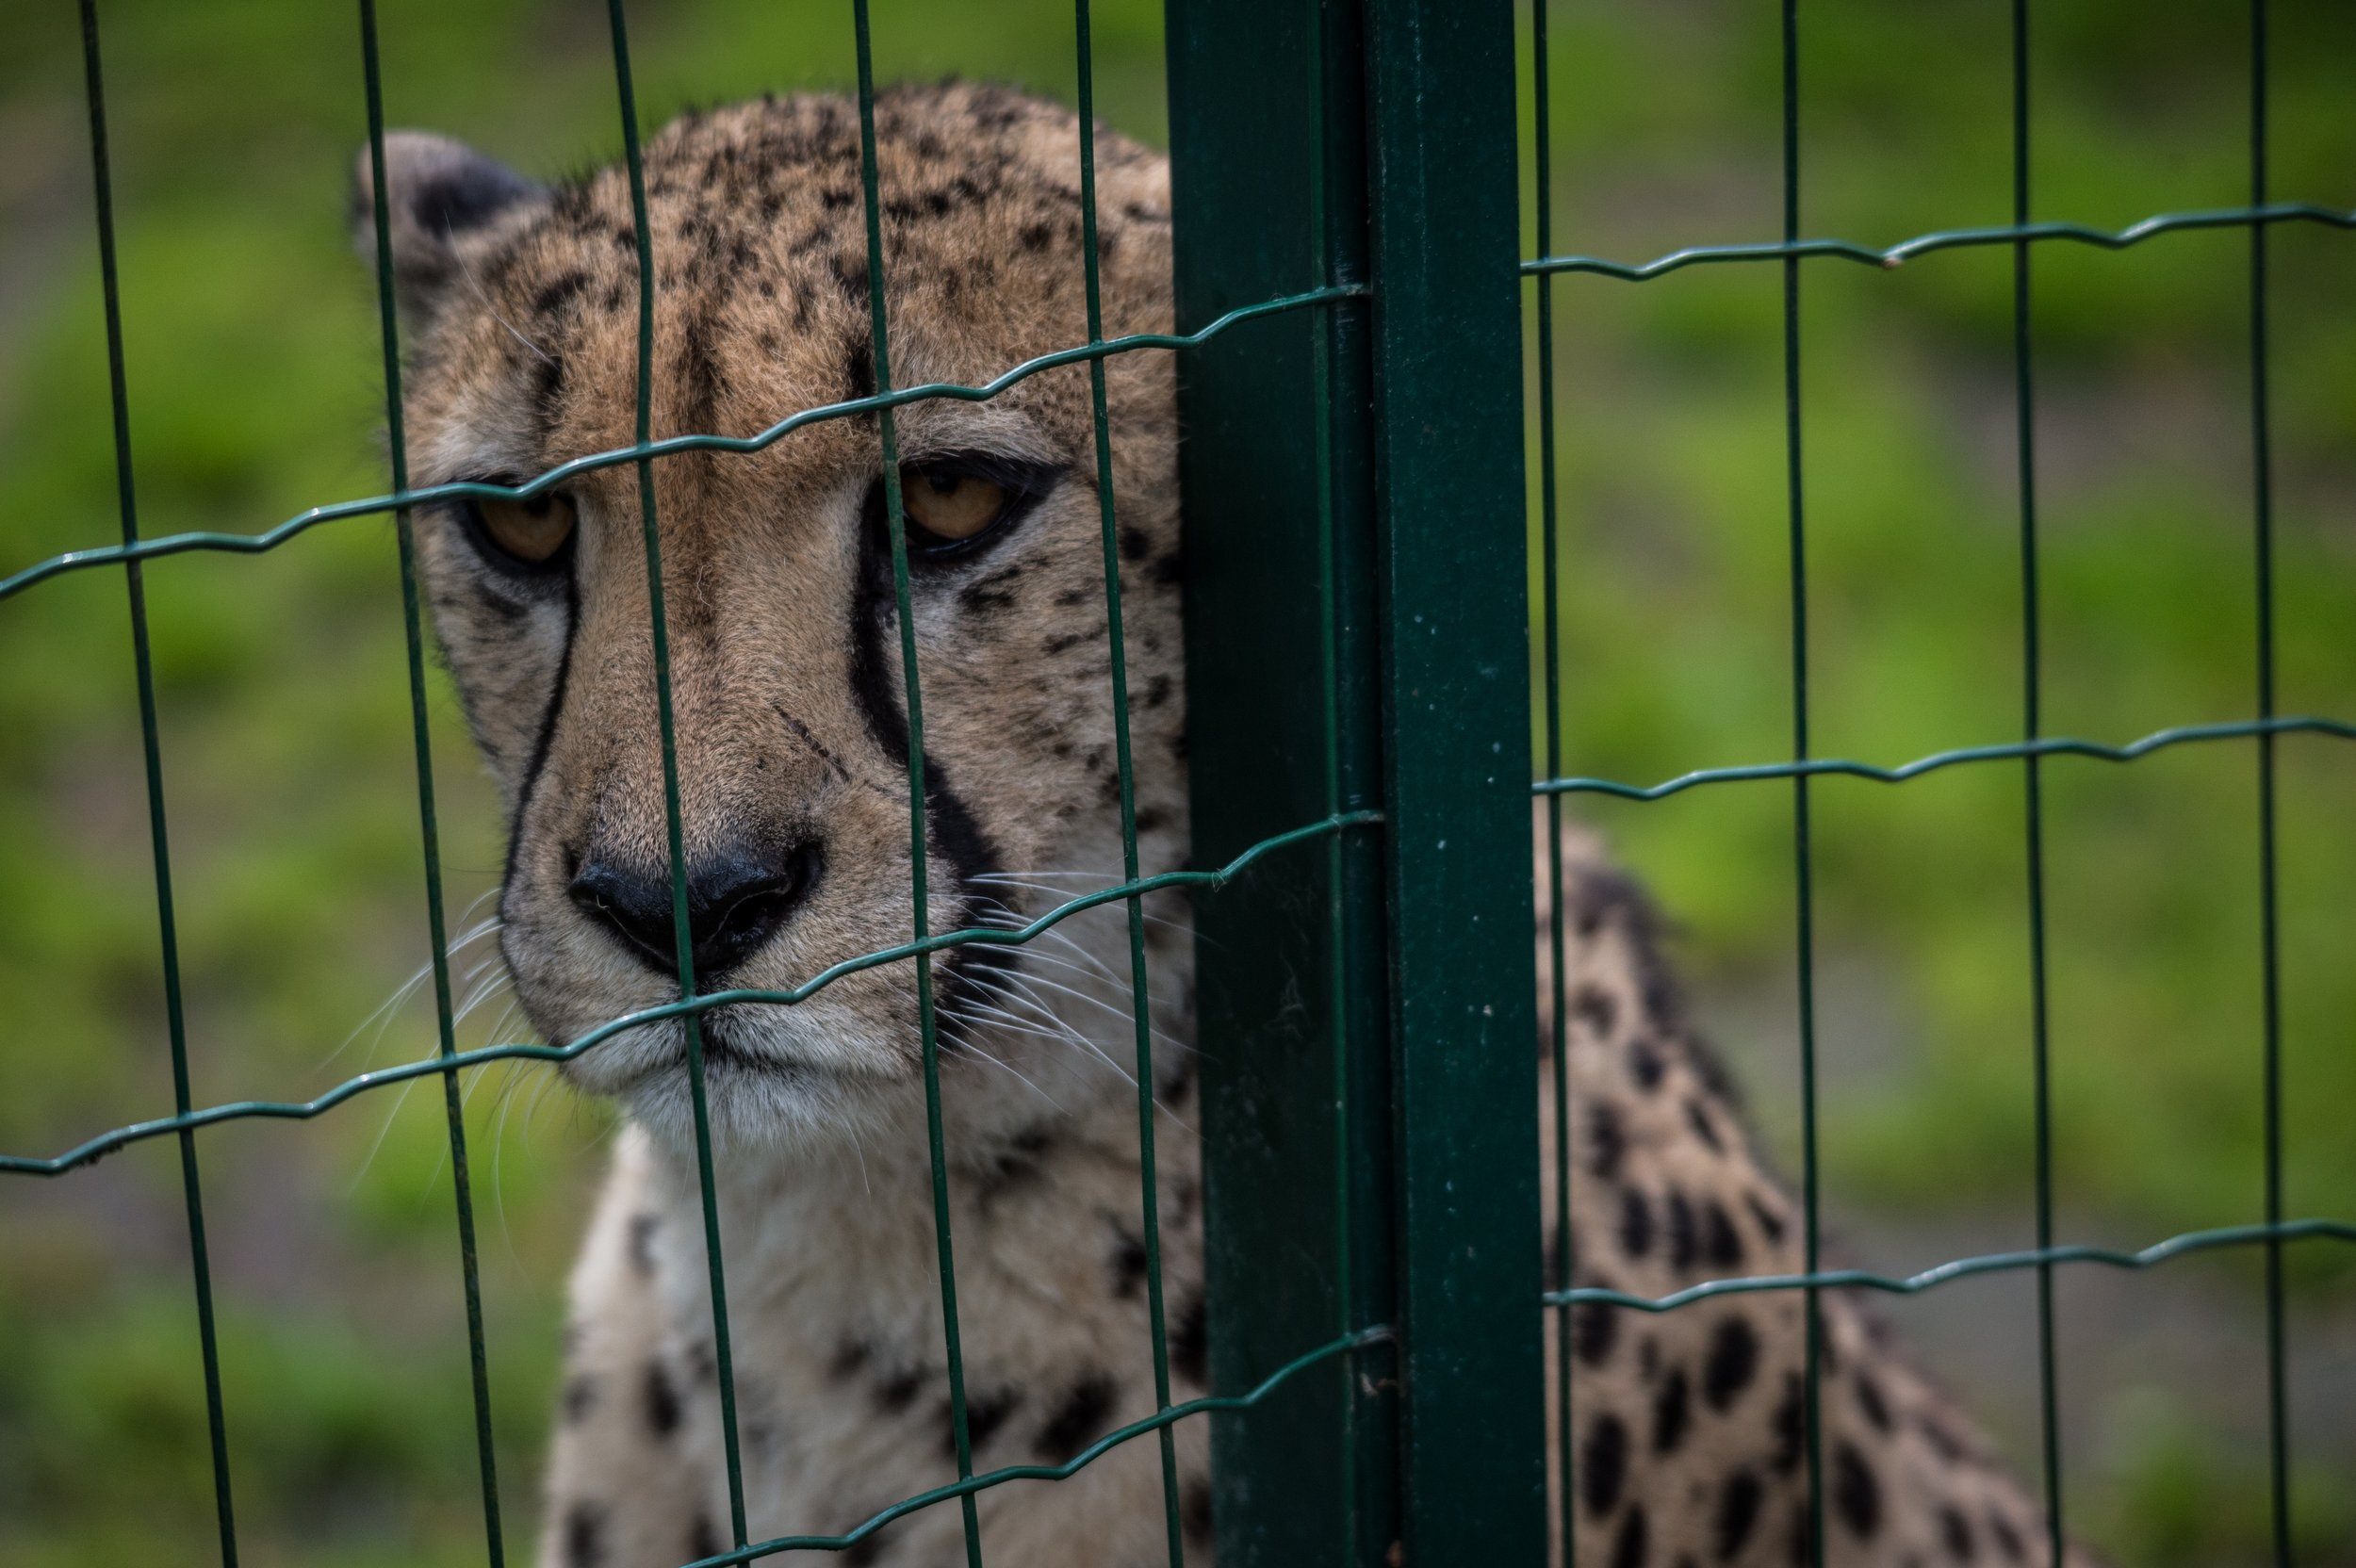 Cheetah in Zoo .jpg